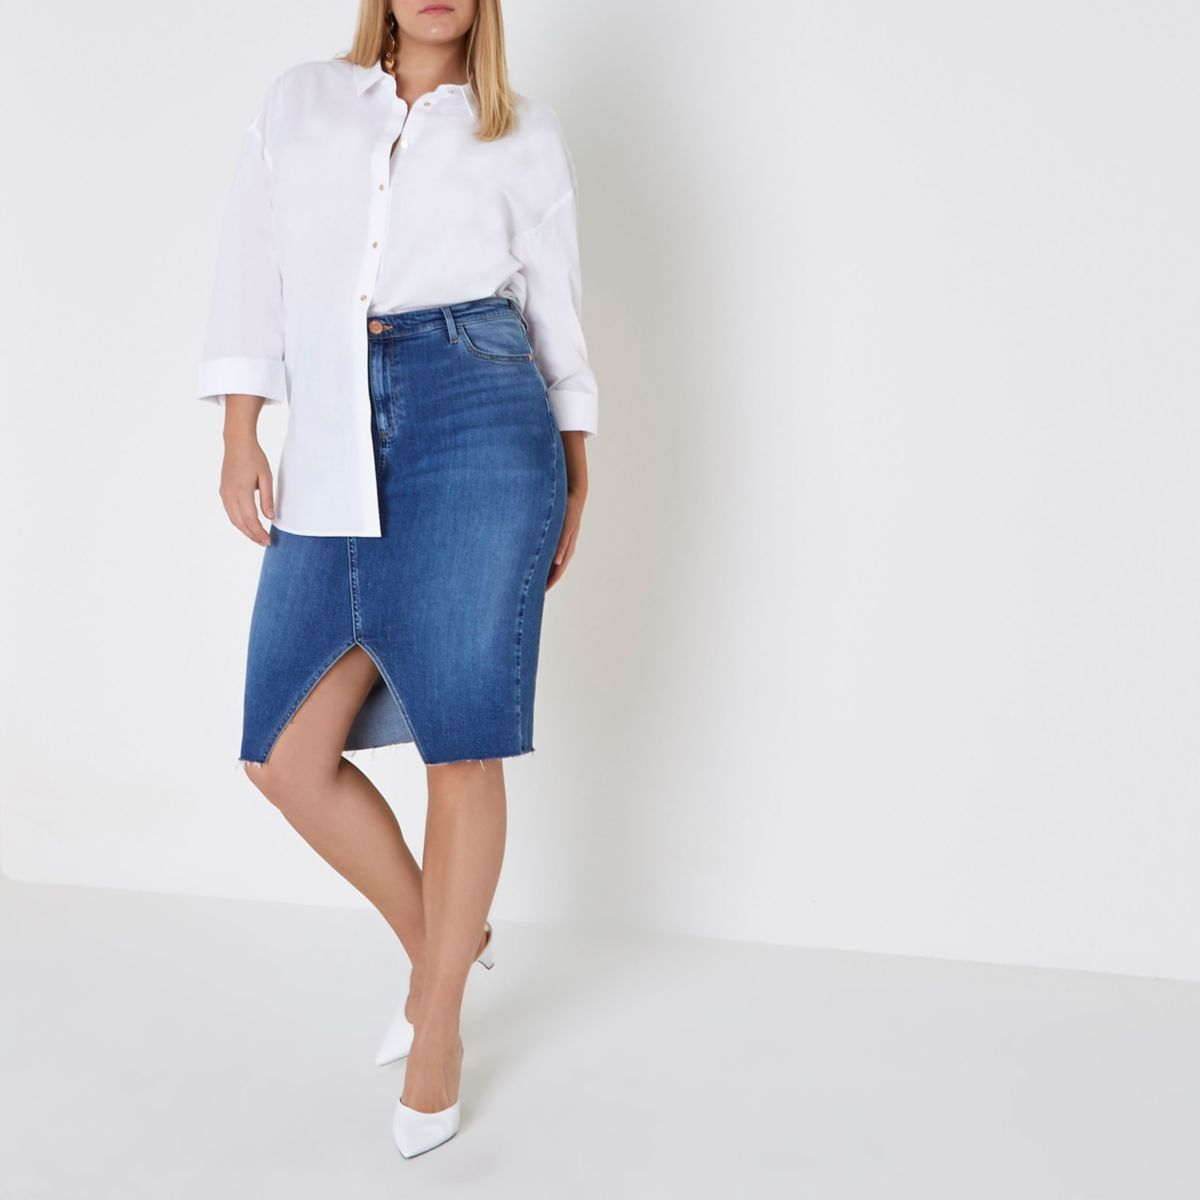 Shop for blue jean skirt online at Target. Free shipping on purchases over $35 and save 5% every day with your Target REDcard.